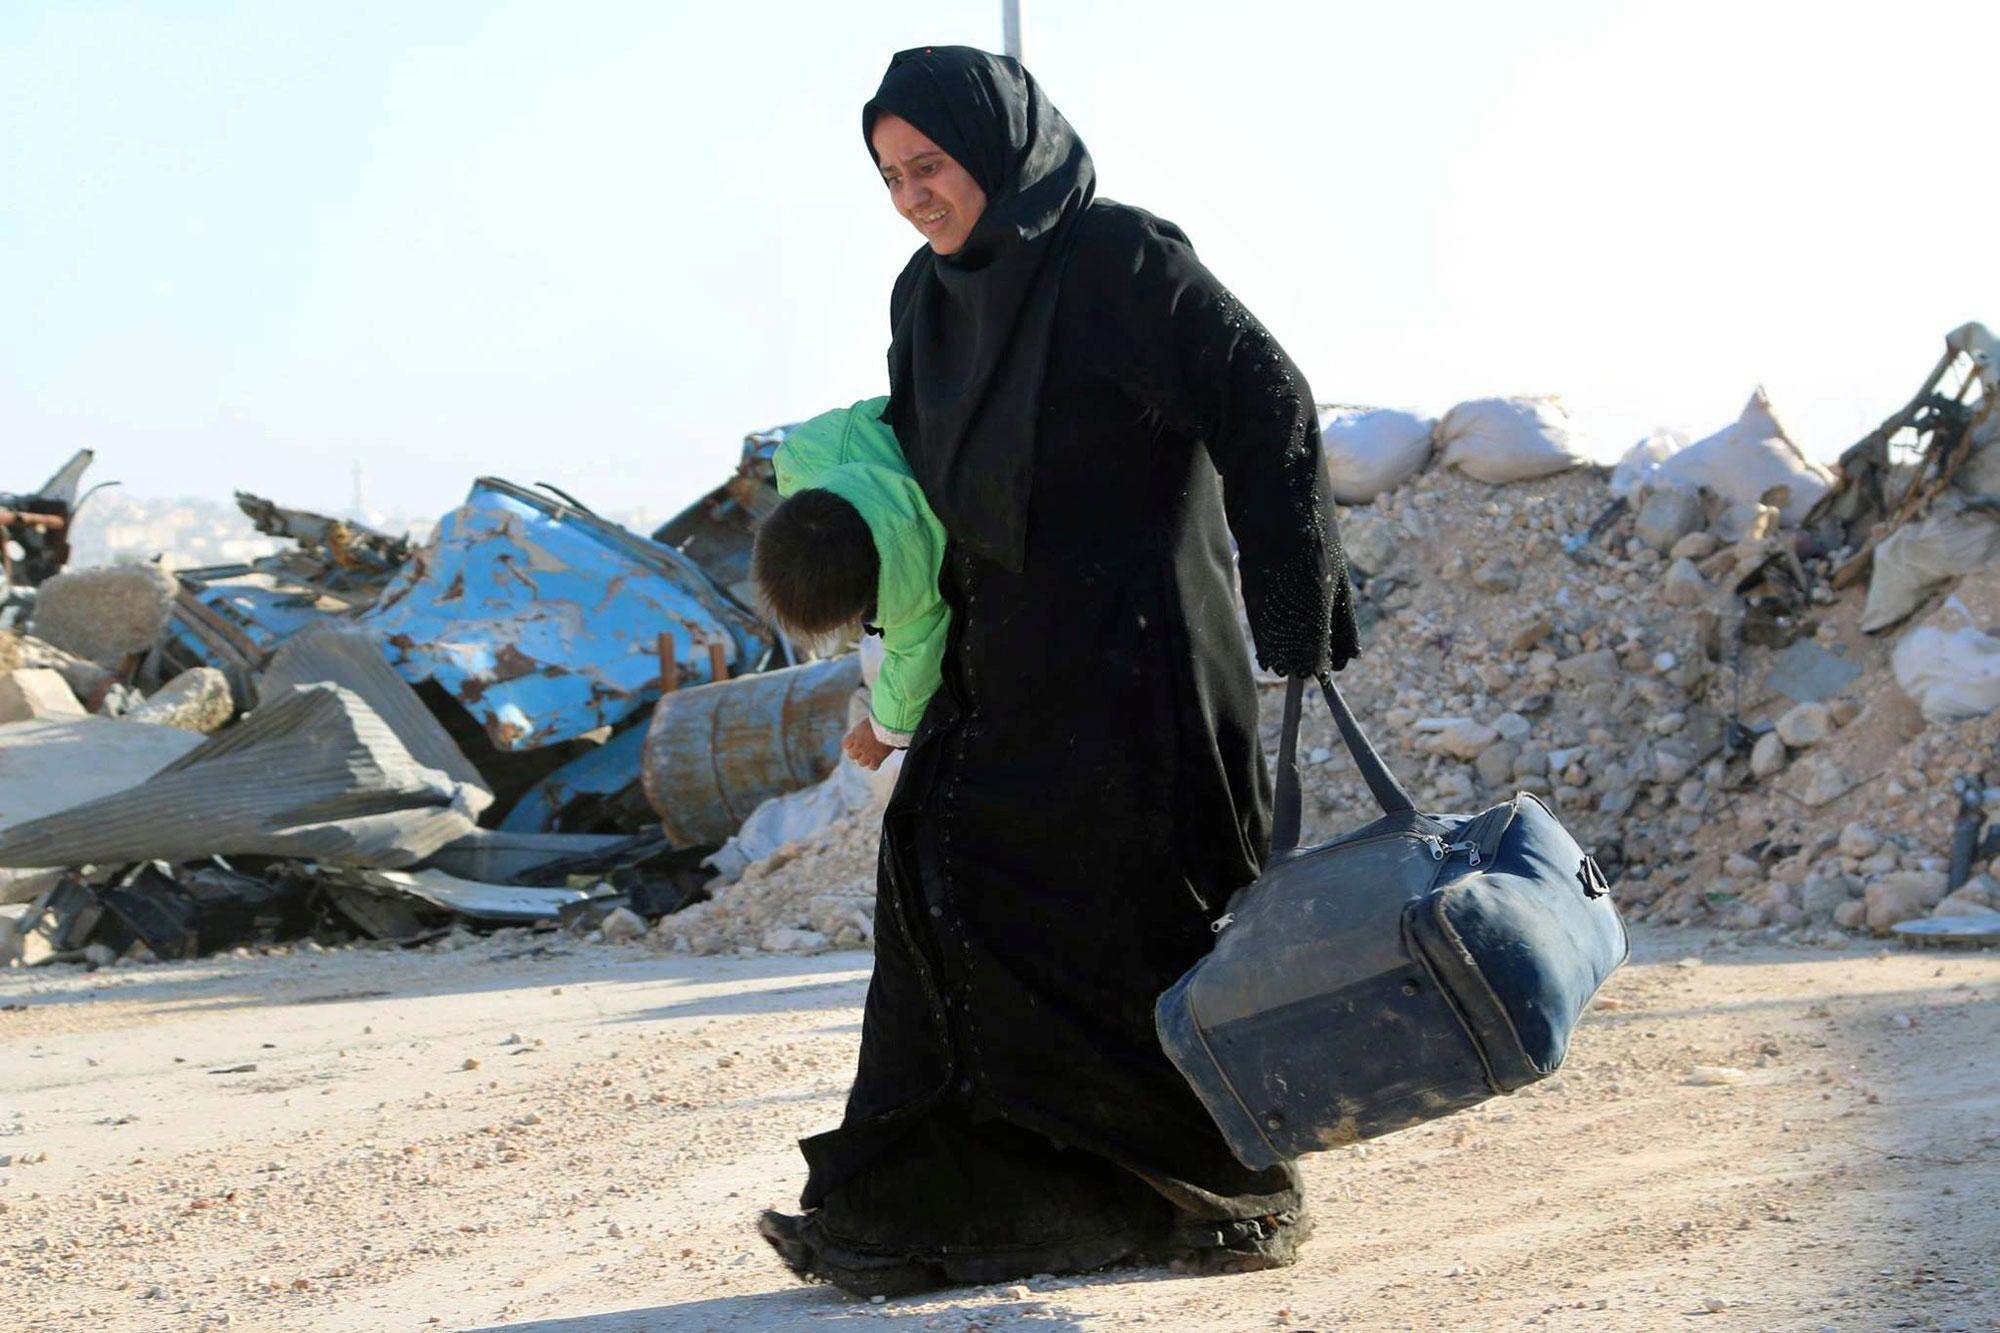 <p>This Sunday, Nov. 27, 2016 photo provided by the Rumaf, a Syrian Kurdish activist group, which has been authenticated based on its contents and other AP reporting, shows A Syrian woman carrying her child in one hand and a bag in the other, as she flees rebel-held eastern neighborhoods of Aleppo into the Sheikh Maqsoud area that is controlled by Kurdish fighters, Syria. Syrian state media is reporting that government forces have captured the eastern Aleppo neighborhood of Sakhour, putting much of the northern part of Aleppo's besieged rebel-held areas under state control. (The Rumaf via AP) </p>